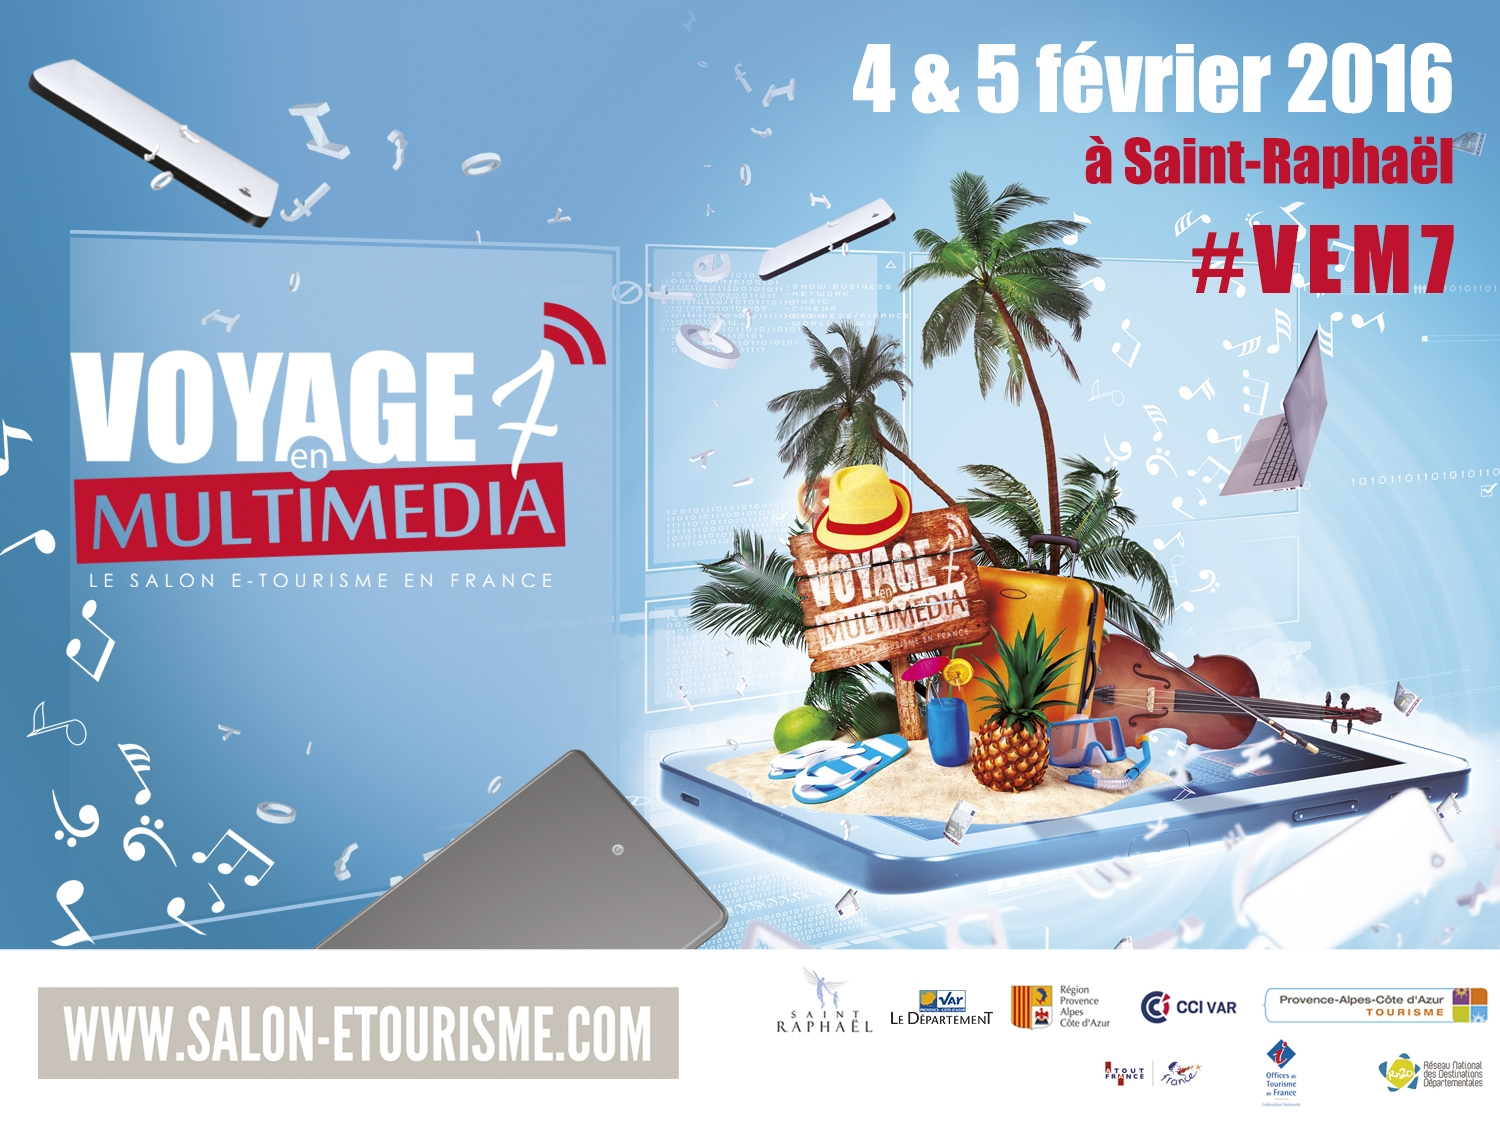 Salon e-tourisme #VeM7 : décollage imminent !